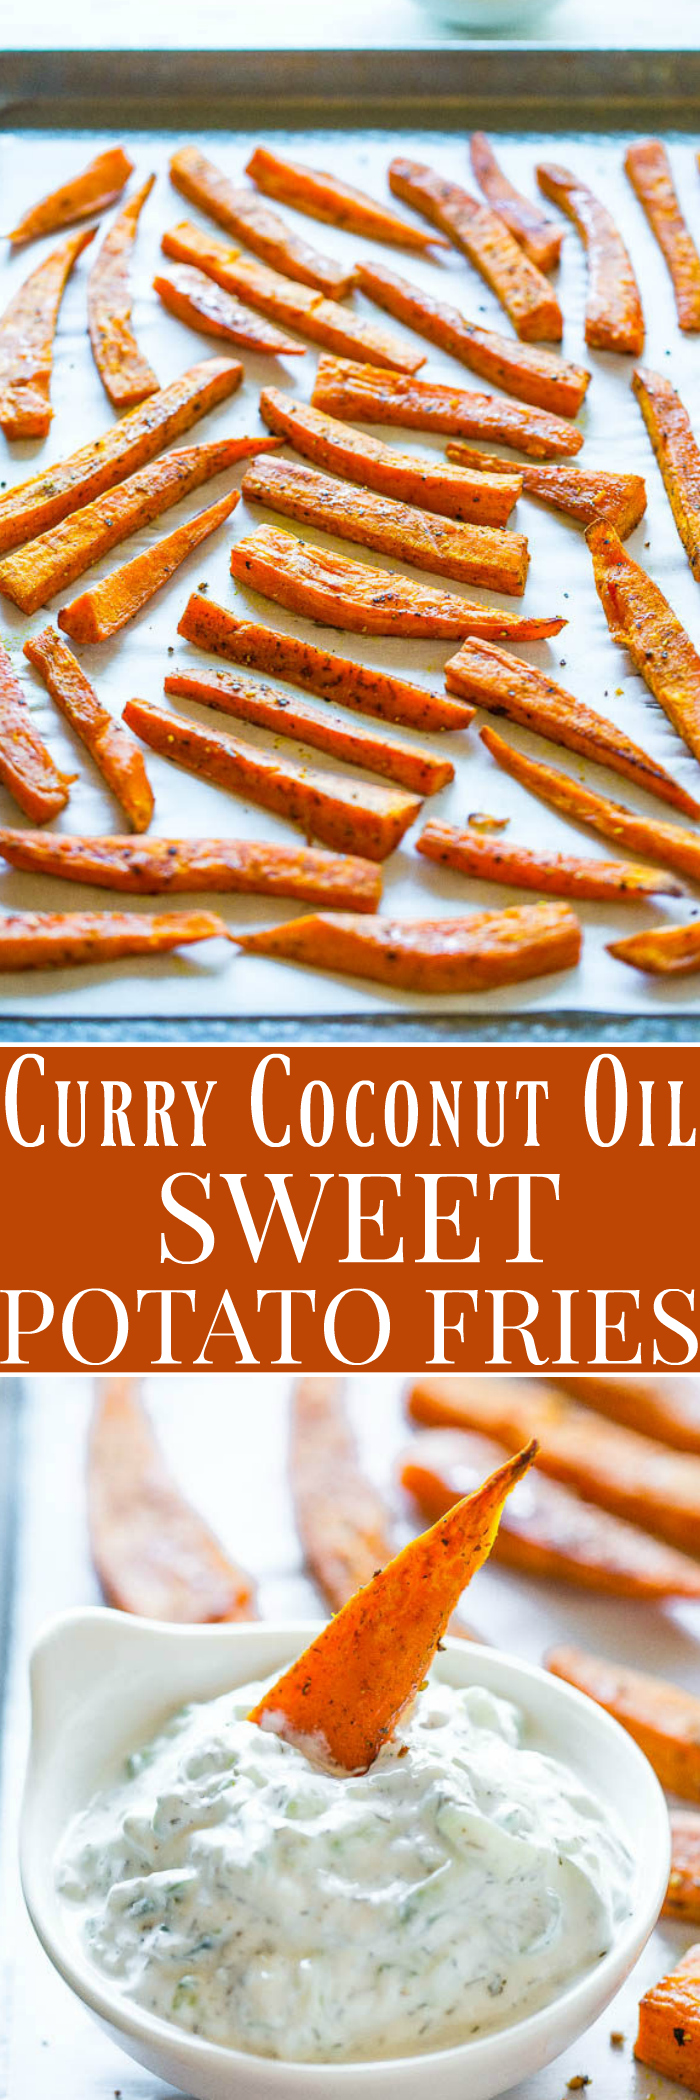 Curry Coconut Oil Sweet Potato Fries with Cucumber Dill Dip - A fast and flavorful twist on sweet potatoes!! The warming notes of the curry are perfectly offset by the cooling dip! Comfort food that's HEALTHY and EASY!!